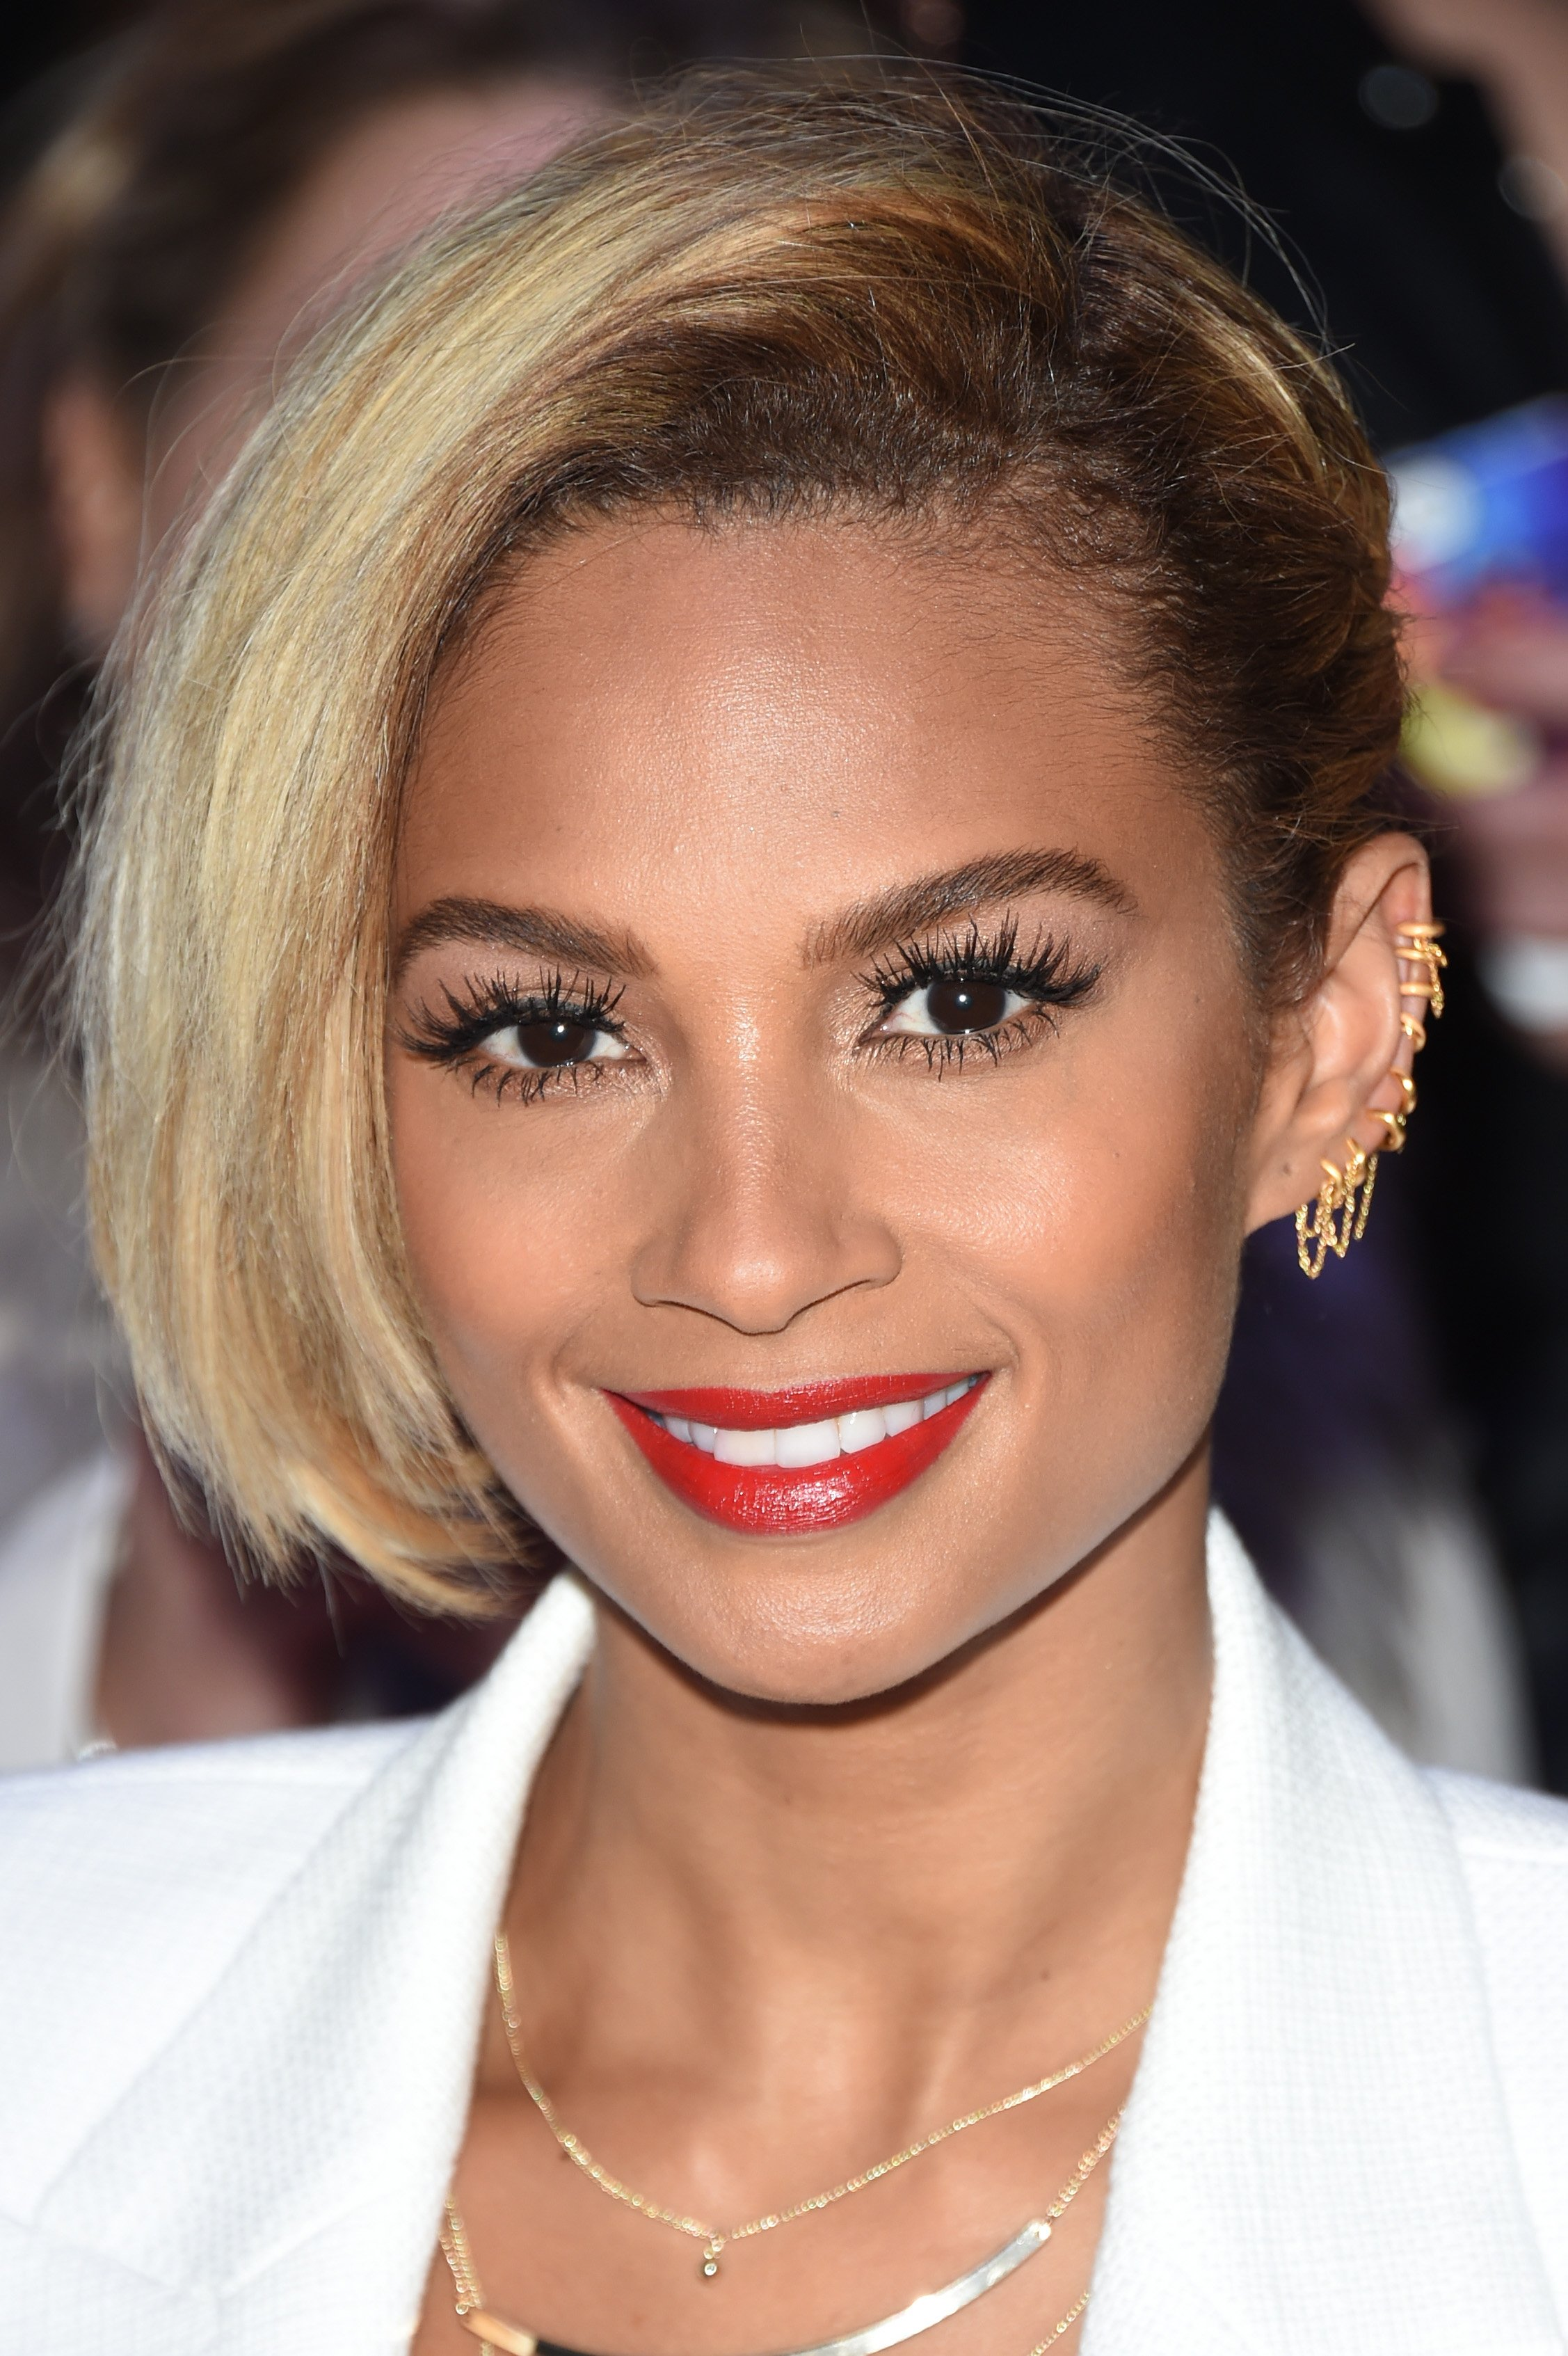 """Alesha Dixon attends the London auditions of """"Britain's Got Talent"""" at Dominion Theatre on January 26, 2016, in London, England.   Source: Getty Images."""